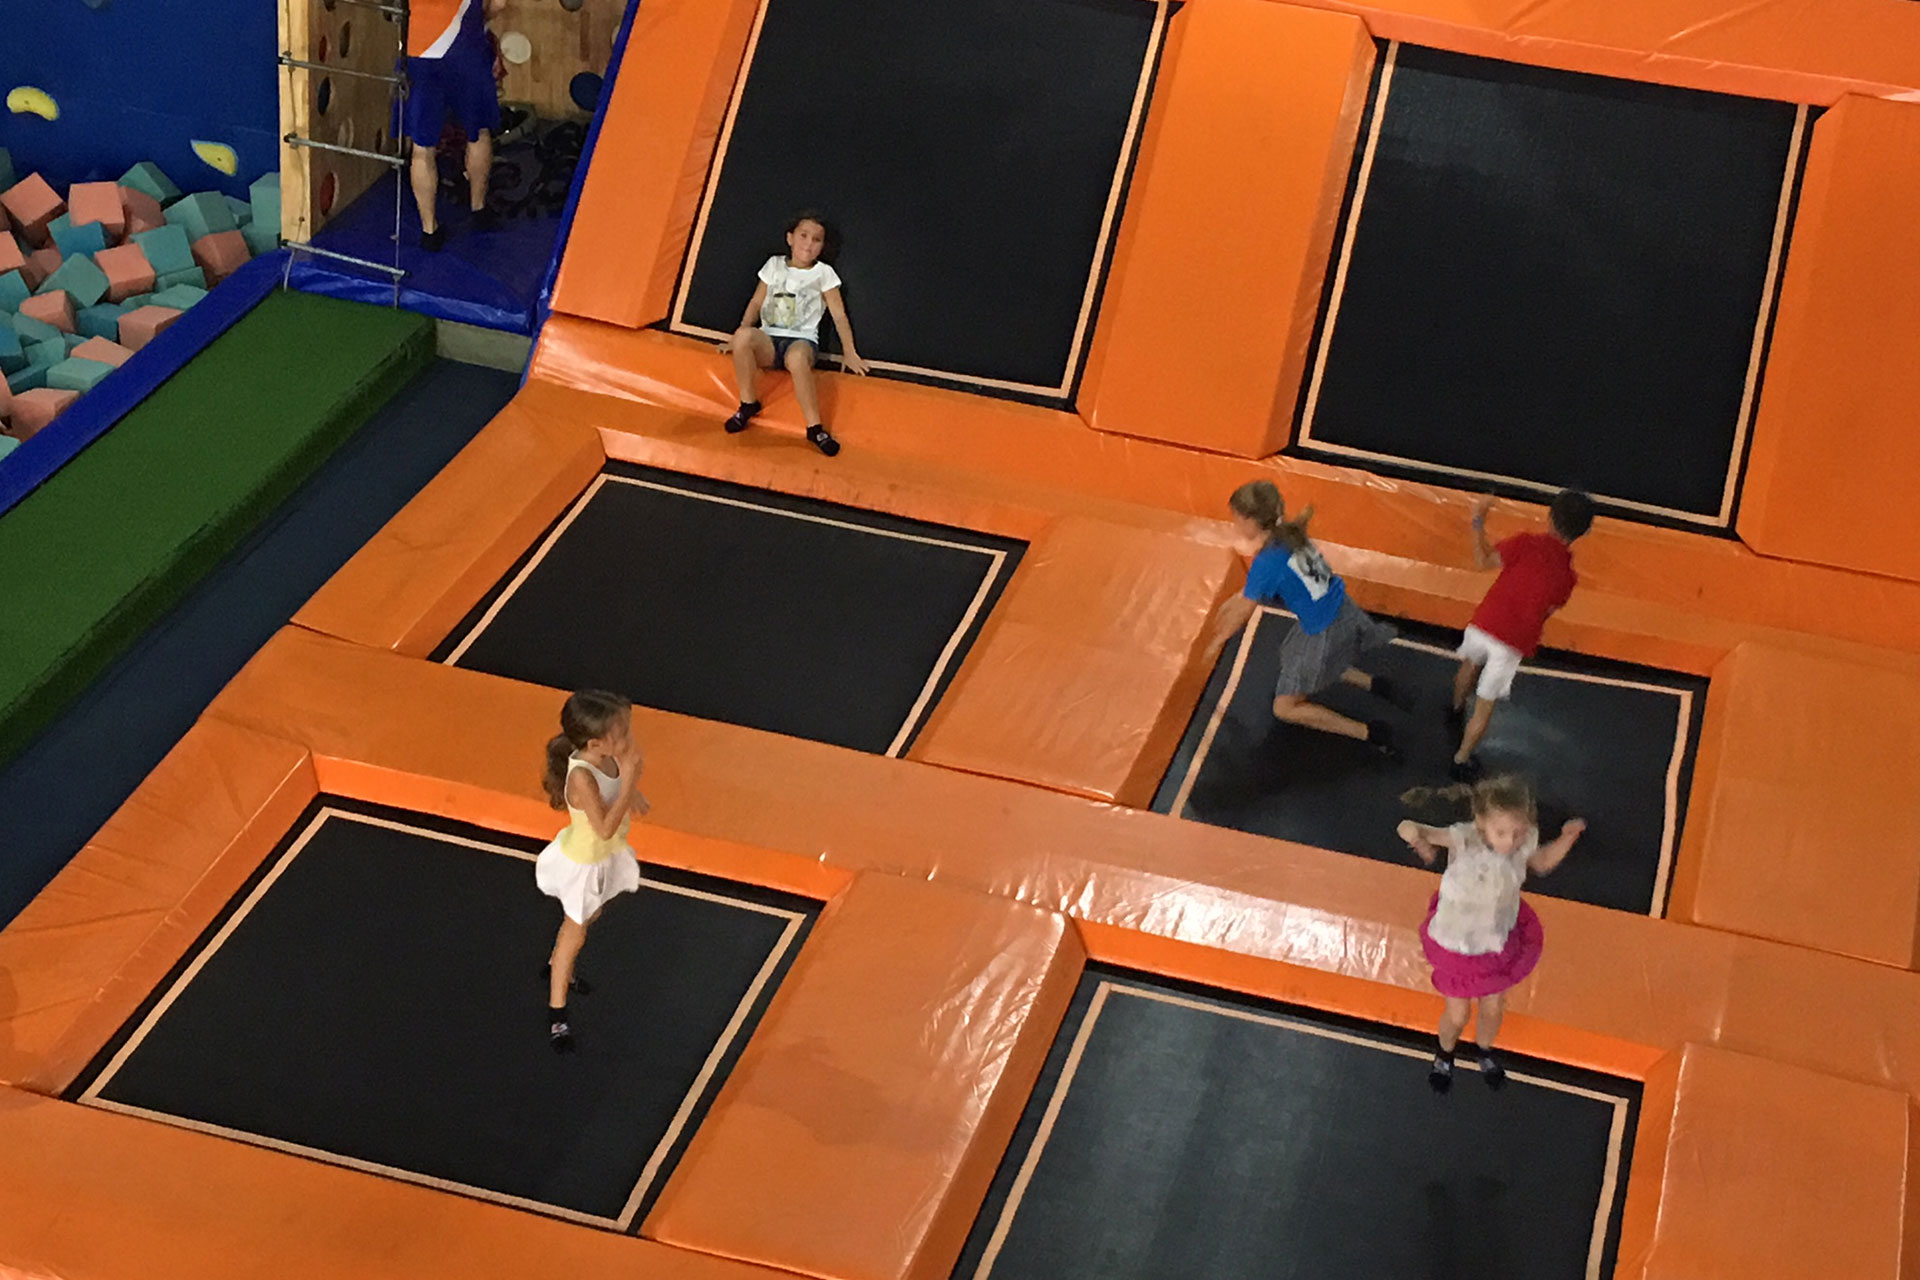 Jump Arena Saigon. Indoor kids activities Saigon, Indoor play HCMC, bouncing Ho Chi Minh City